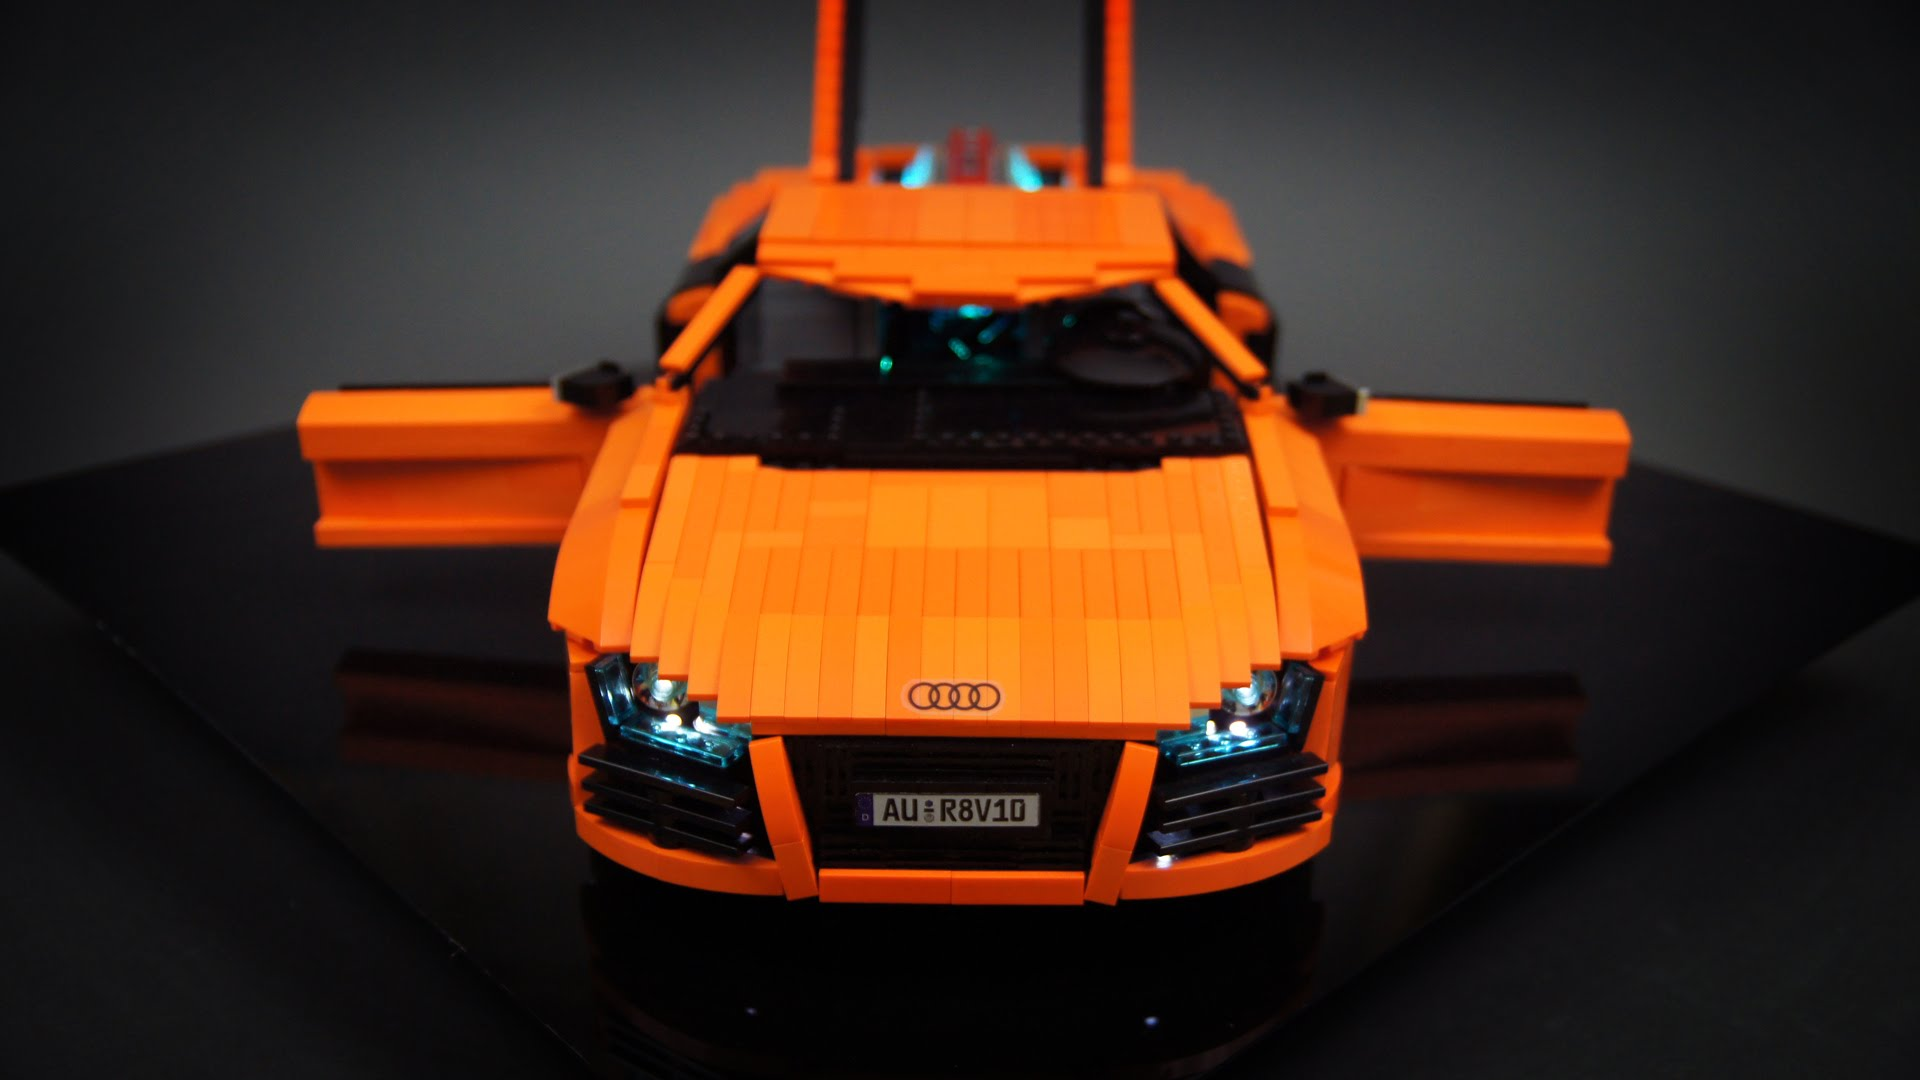 Video Of The Day: Lego Technic RC Audi R8 V10